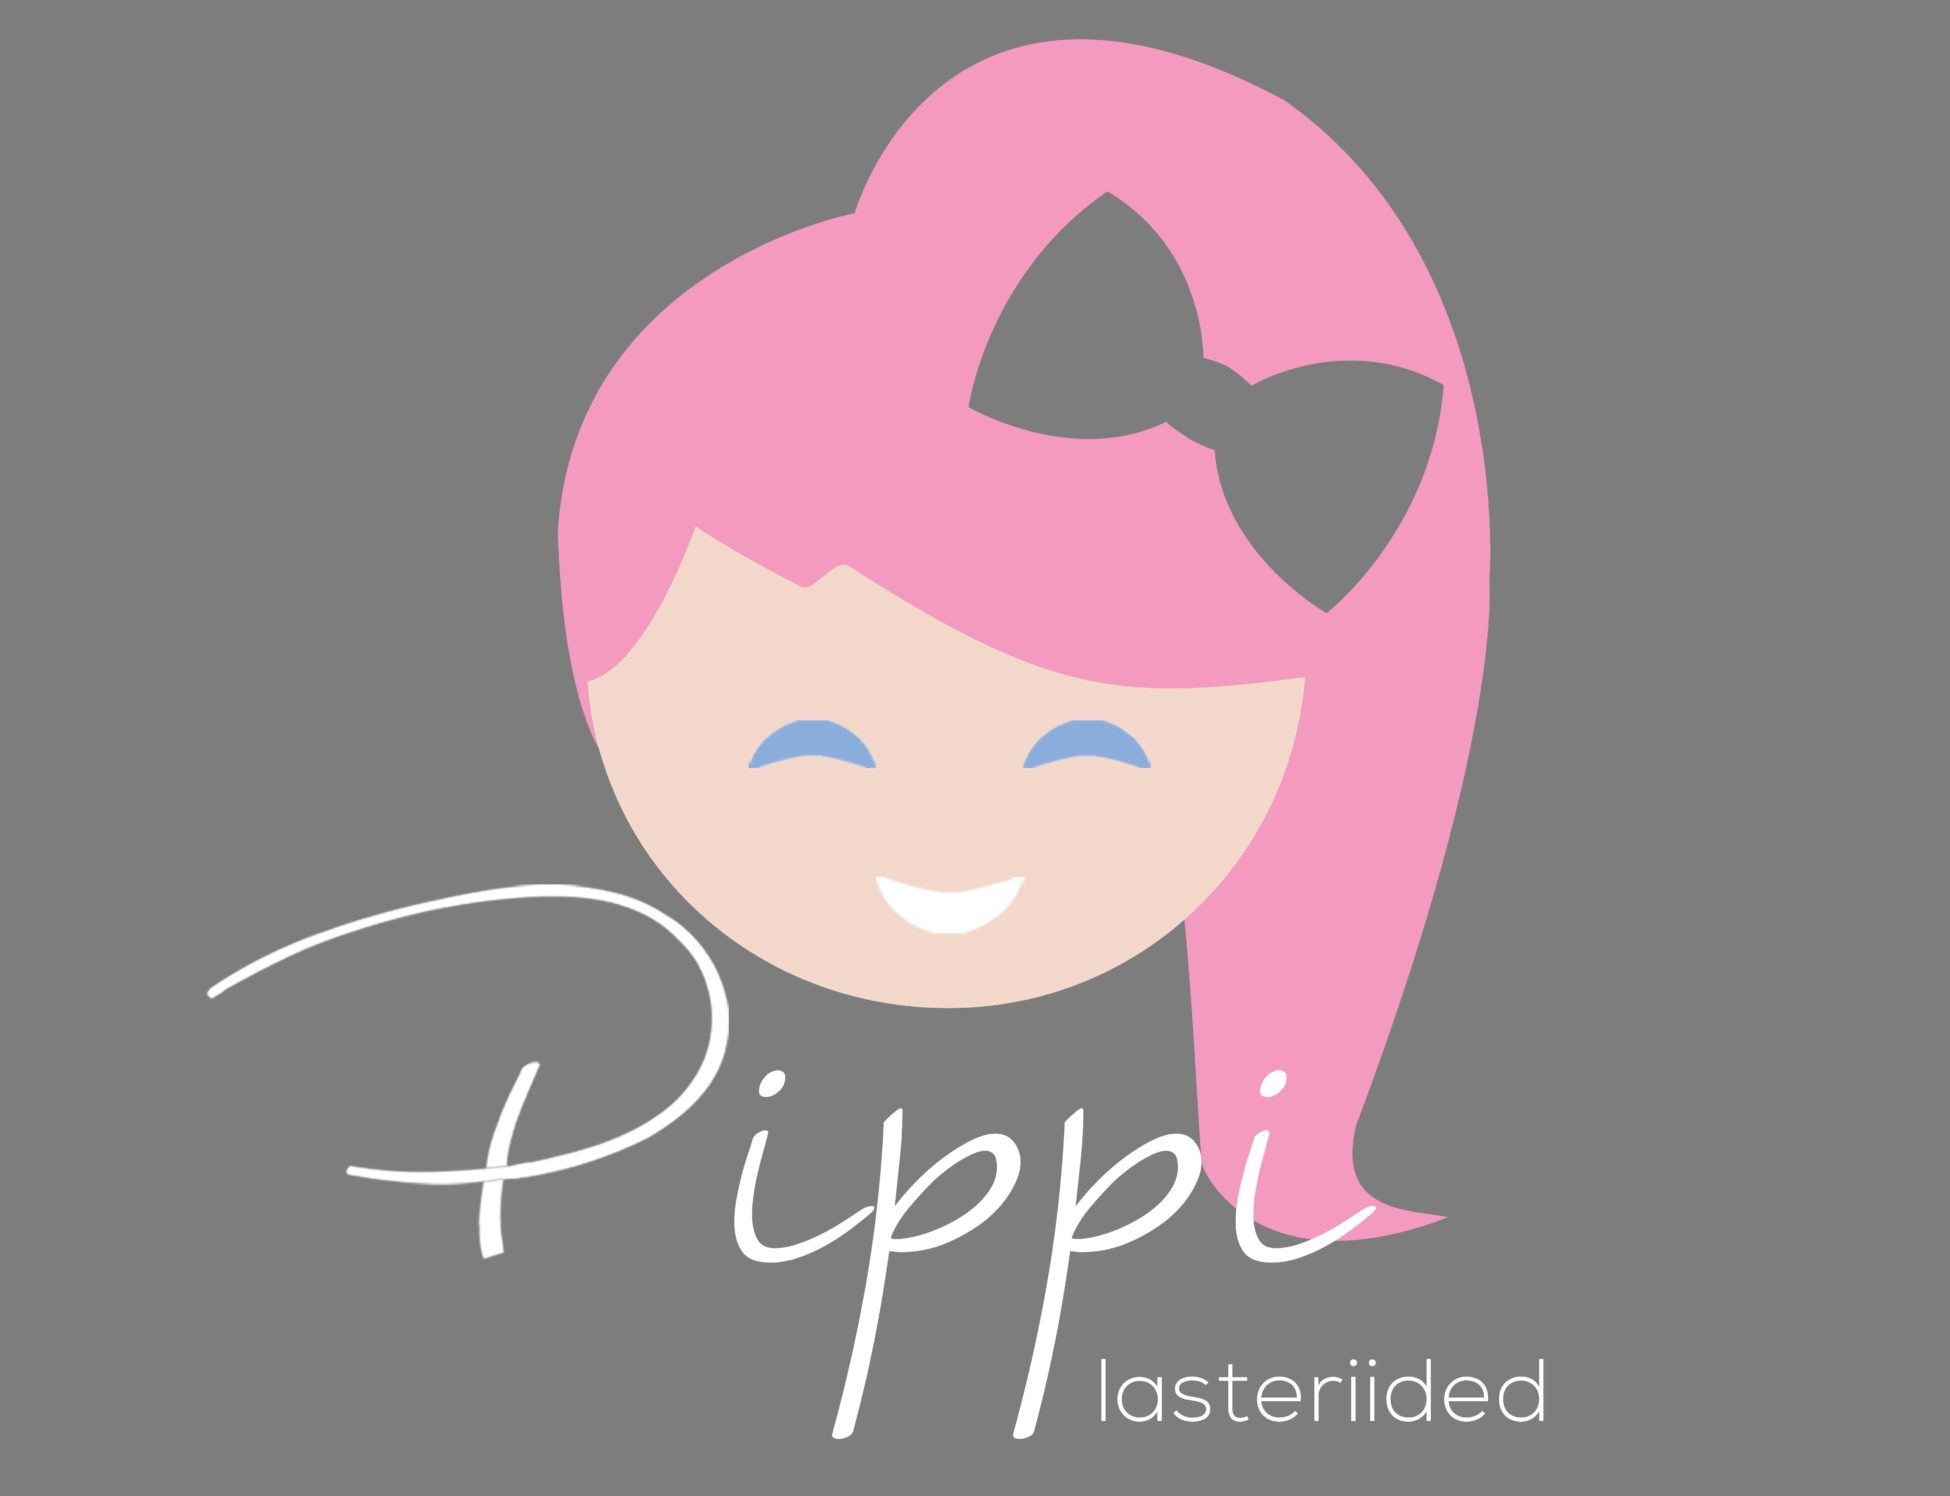 Pippi Lasteriided